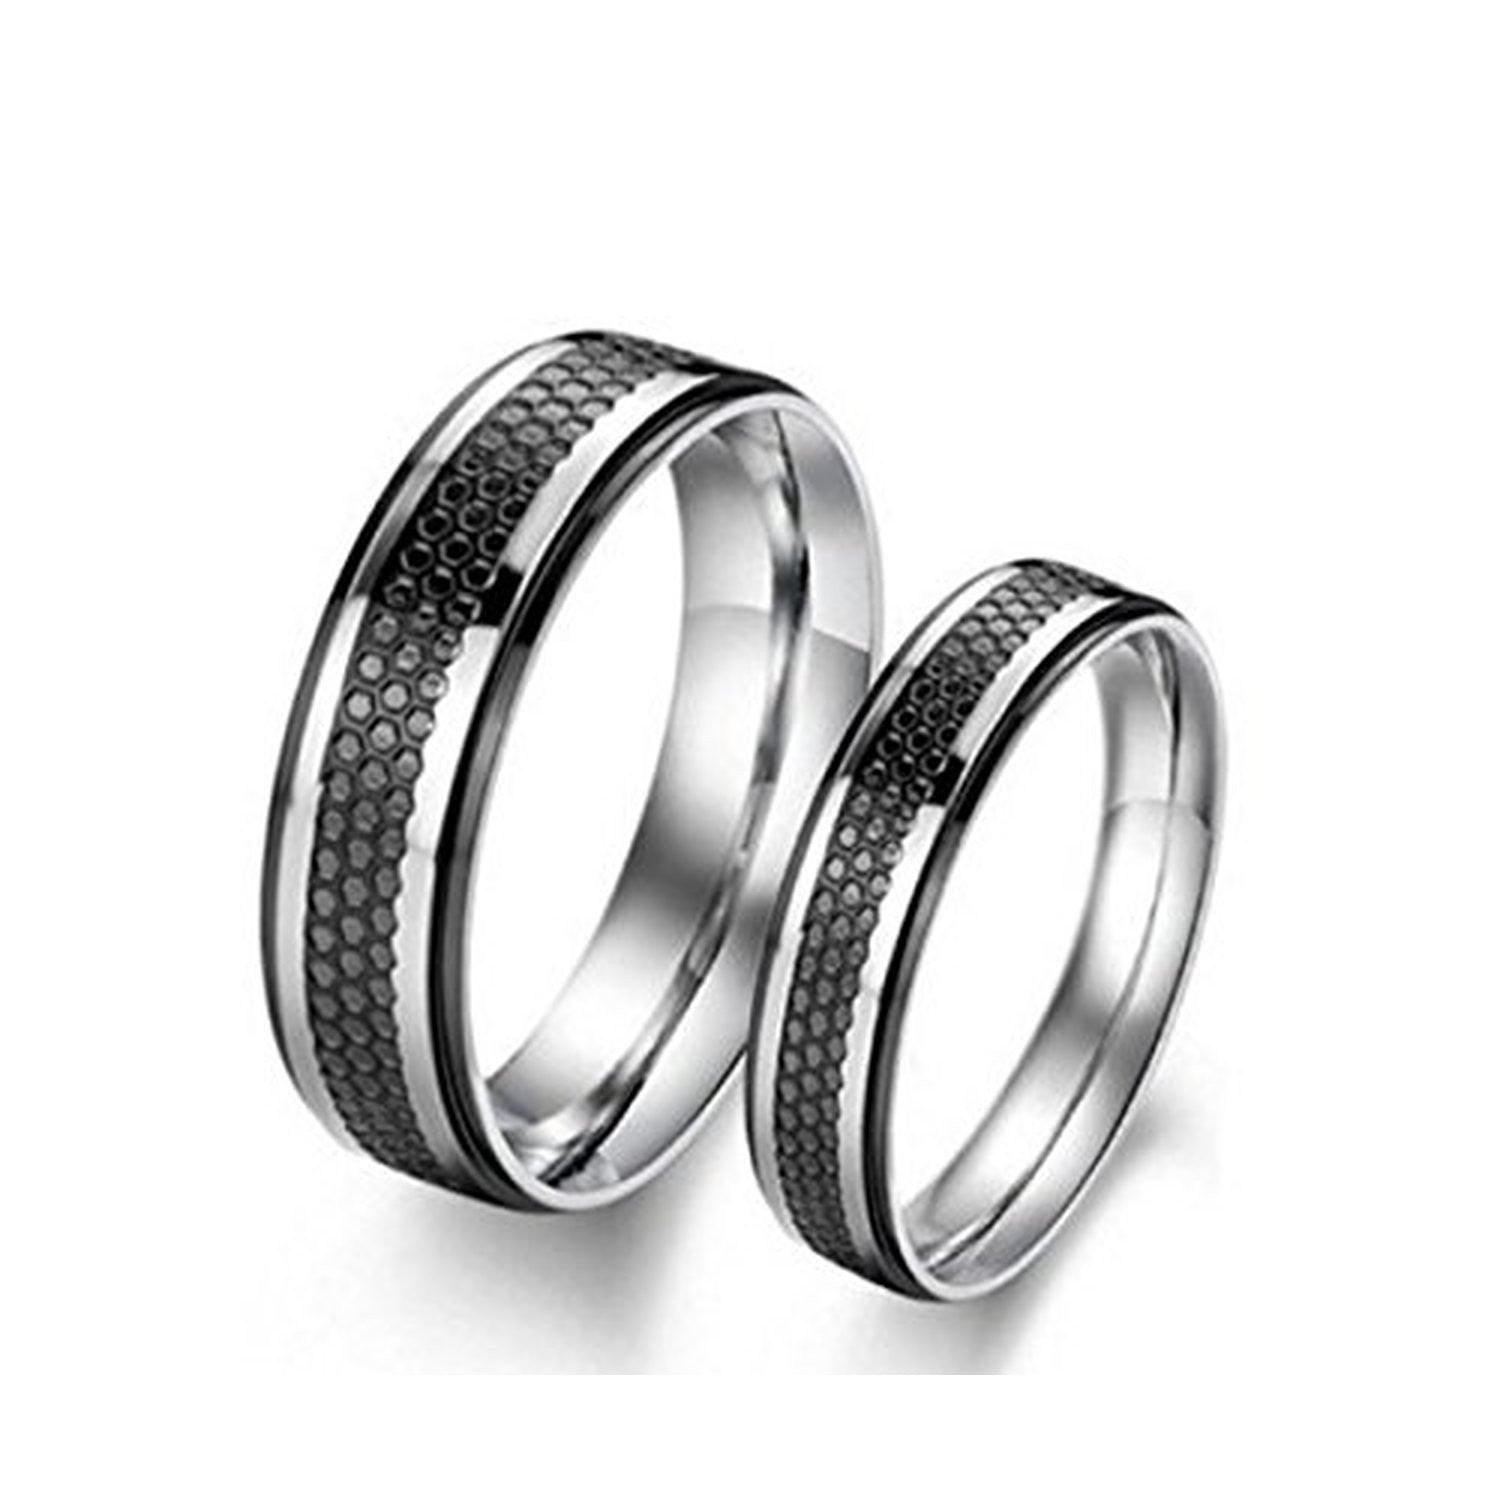 hollis in triumph ip plating rings band bahringer black stainless with ring steel